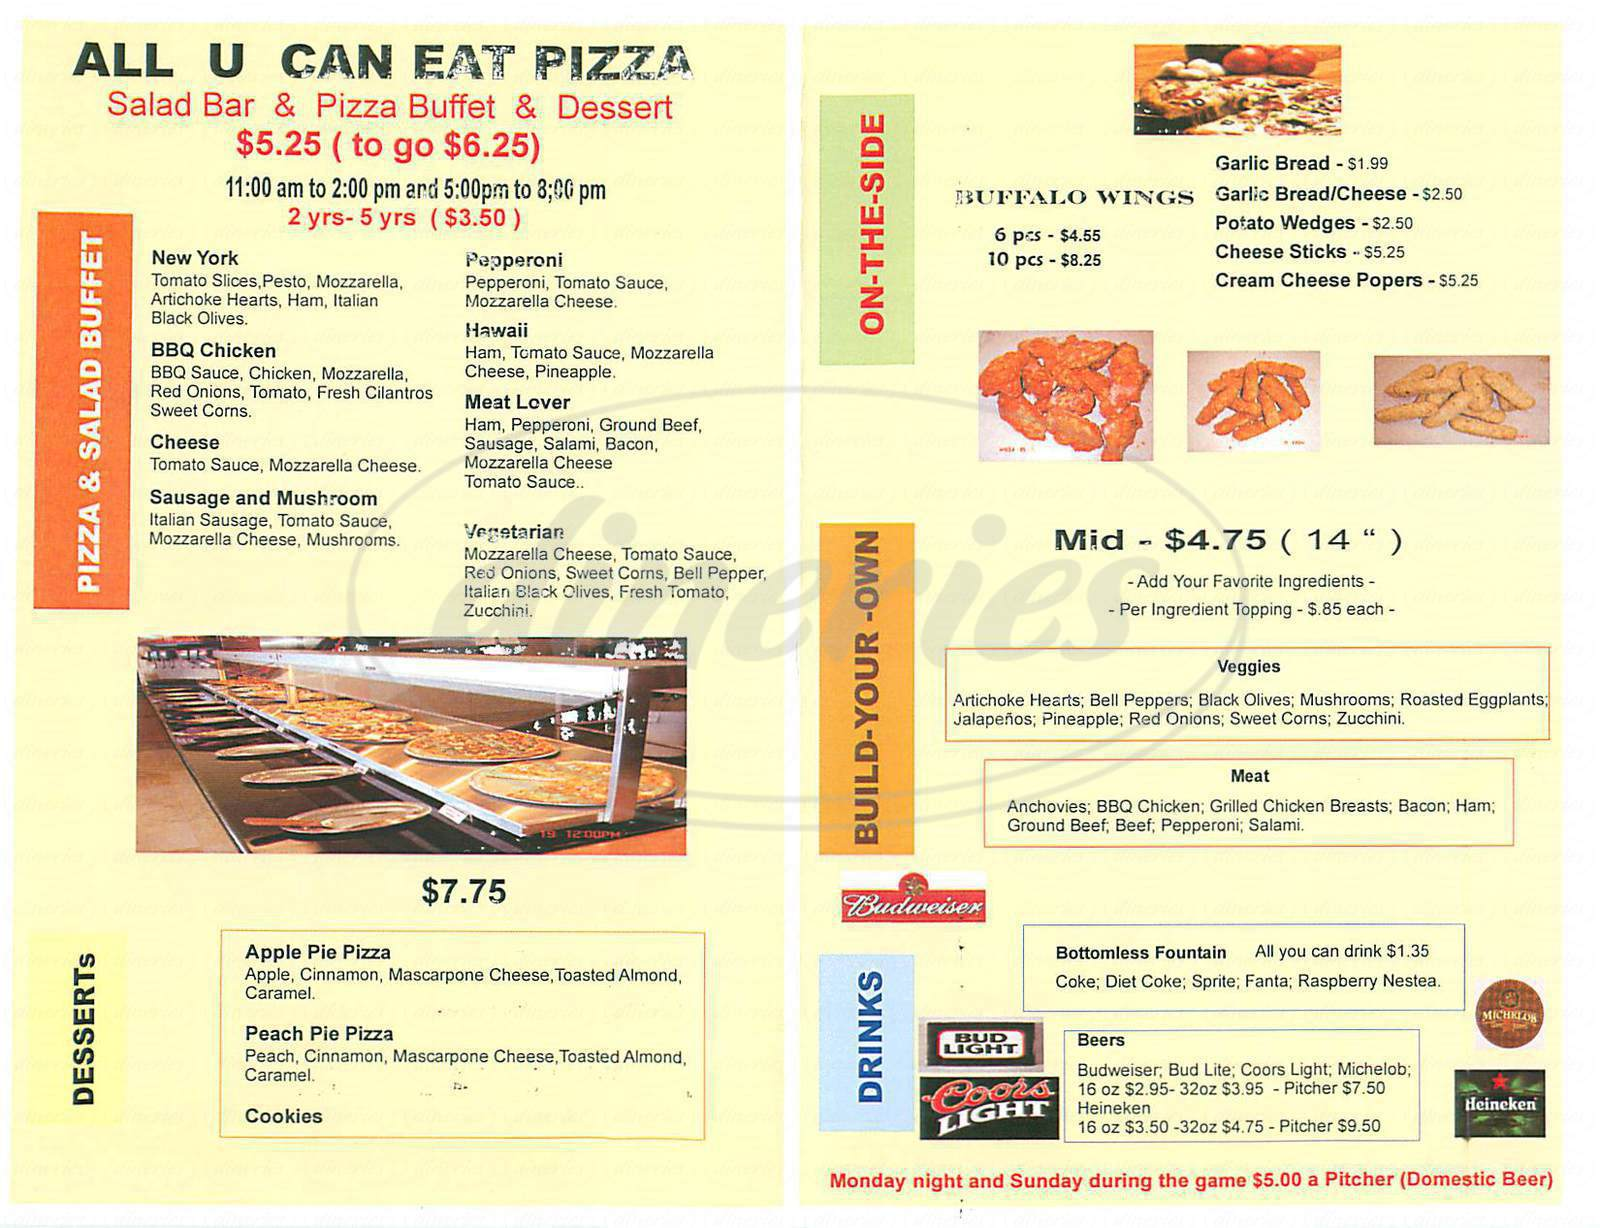 menu for All U Can Eat Pizza